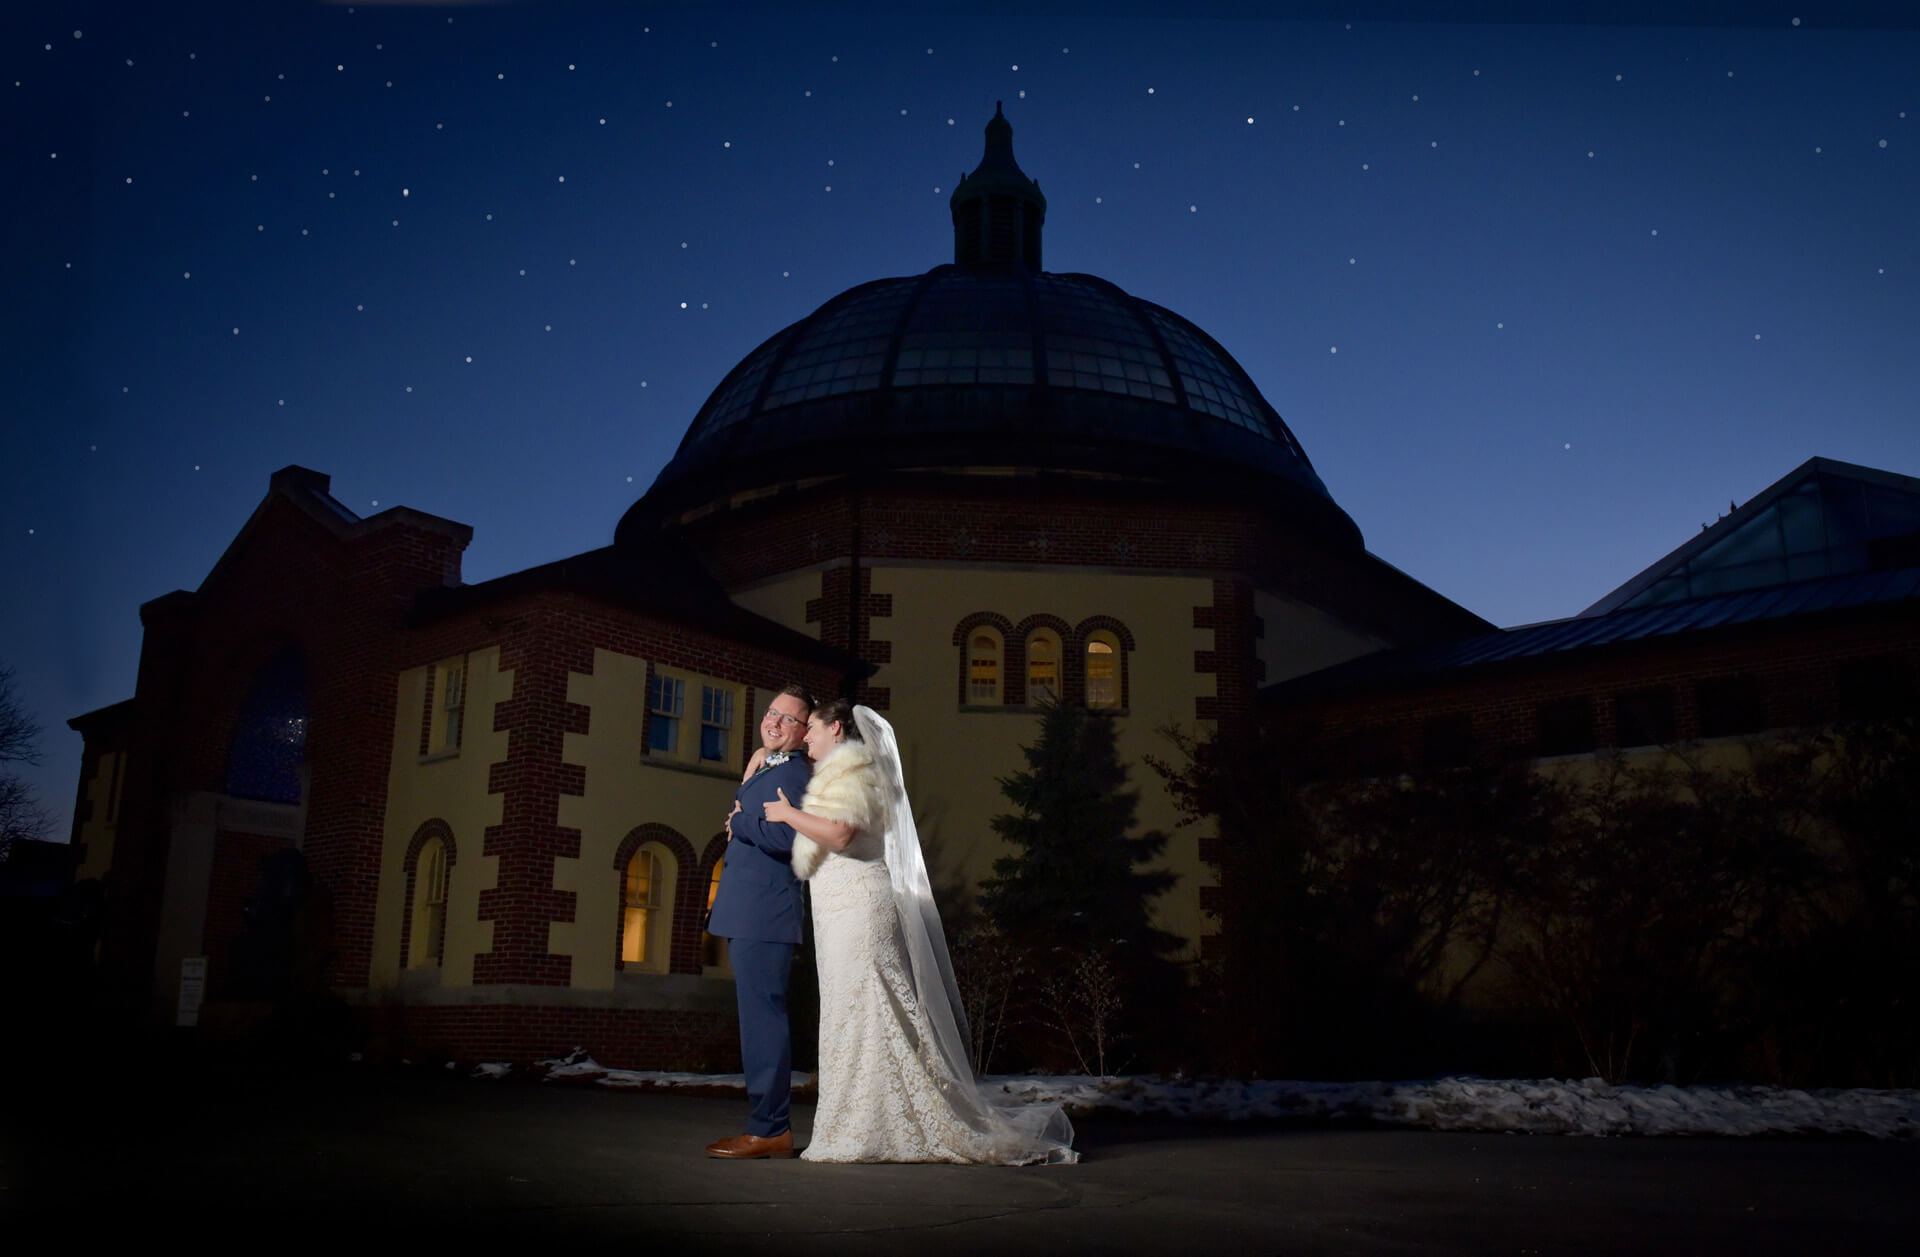 The groom and bride post at sundown at the Detroit Zoo in Royal Oak, Michigan where they had their wedding ceremony.